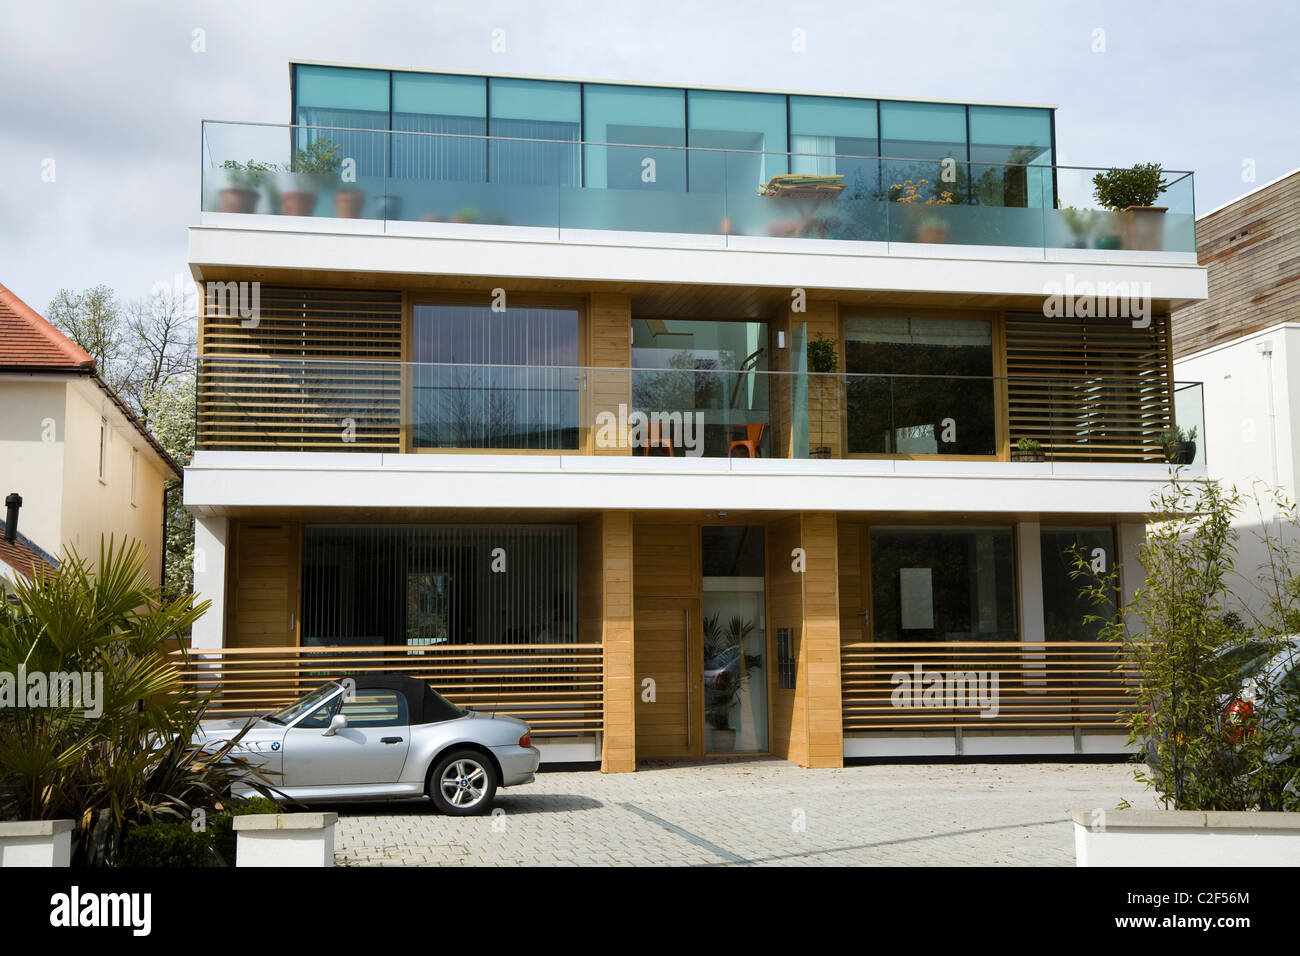 Residential Home / Homes / Luxury New Build Flat / Apartments / Apartment  In Expensive Block Of Private Flats. Twickenham. UK.